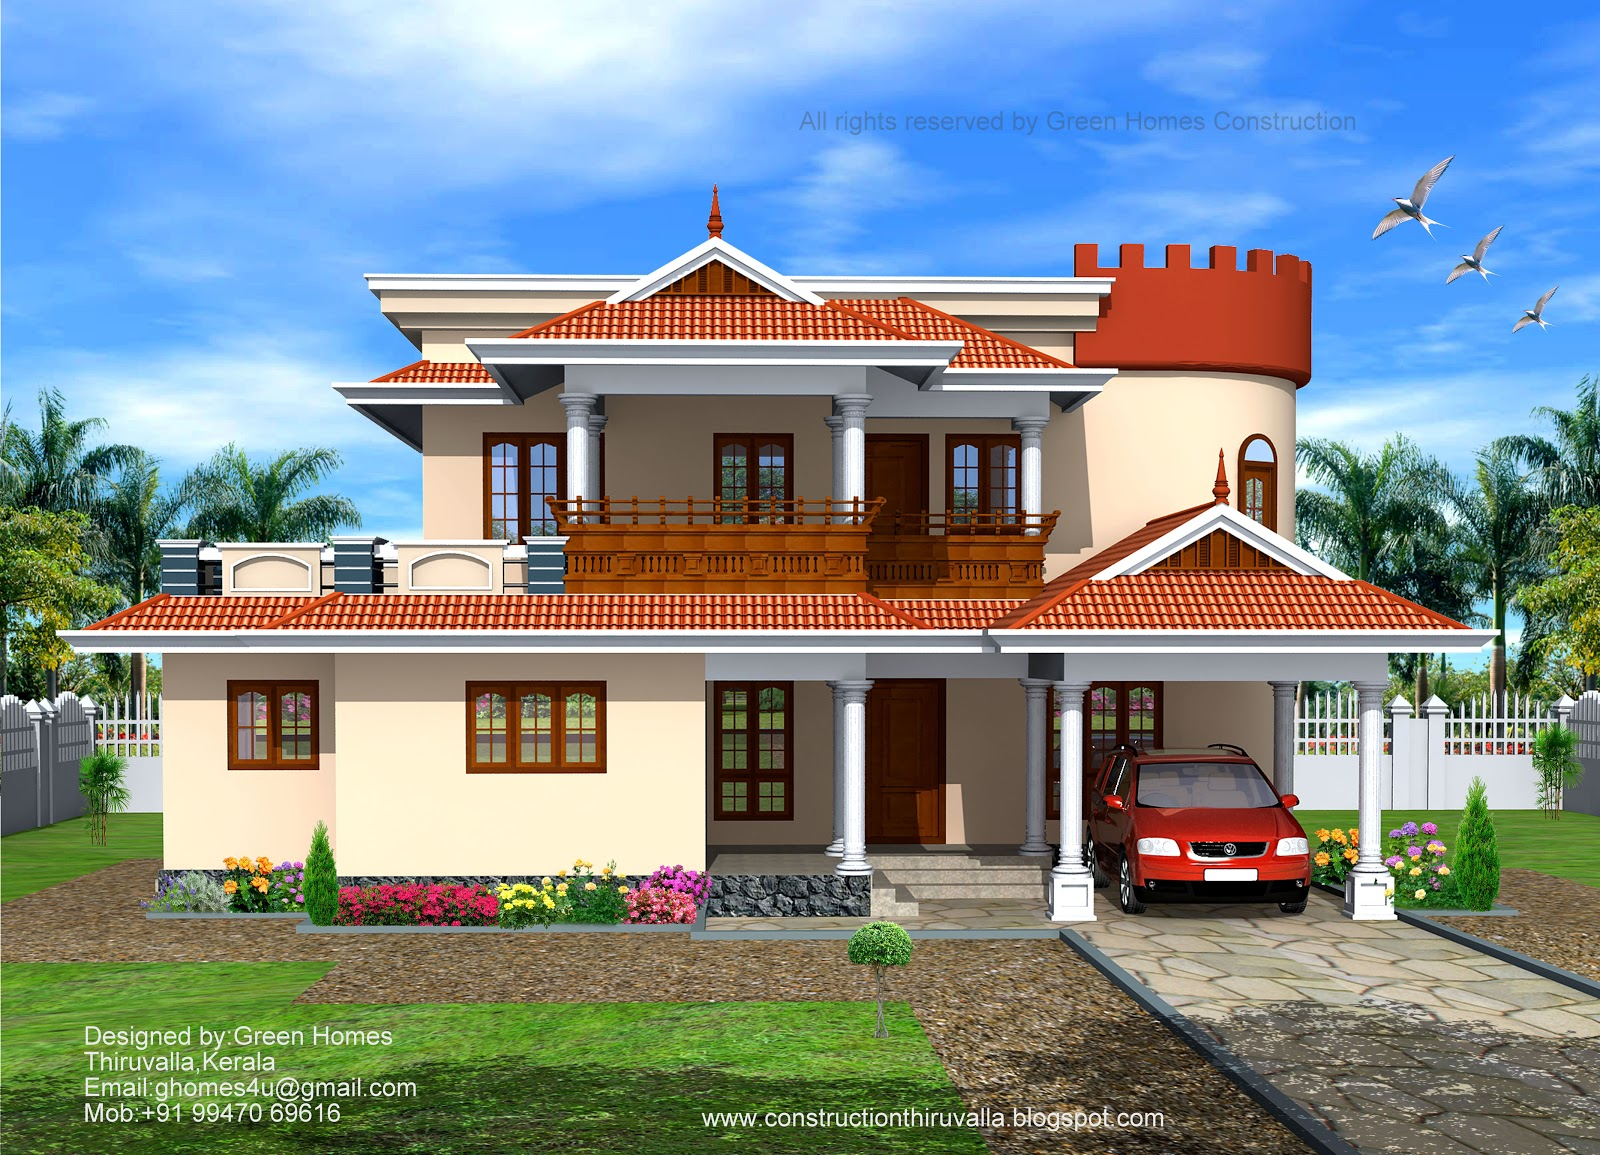 Green homes october 2012 House designs indian style pictures